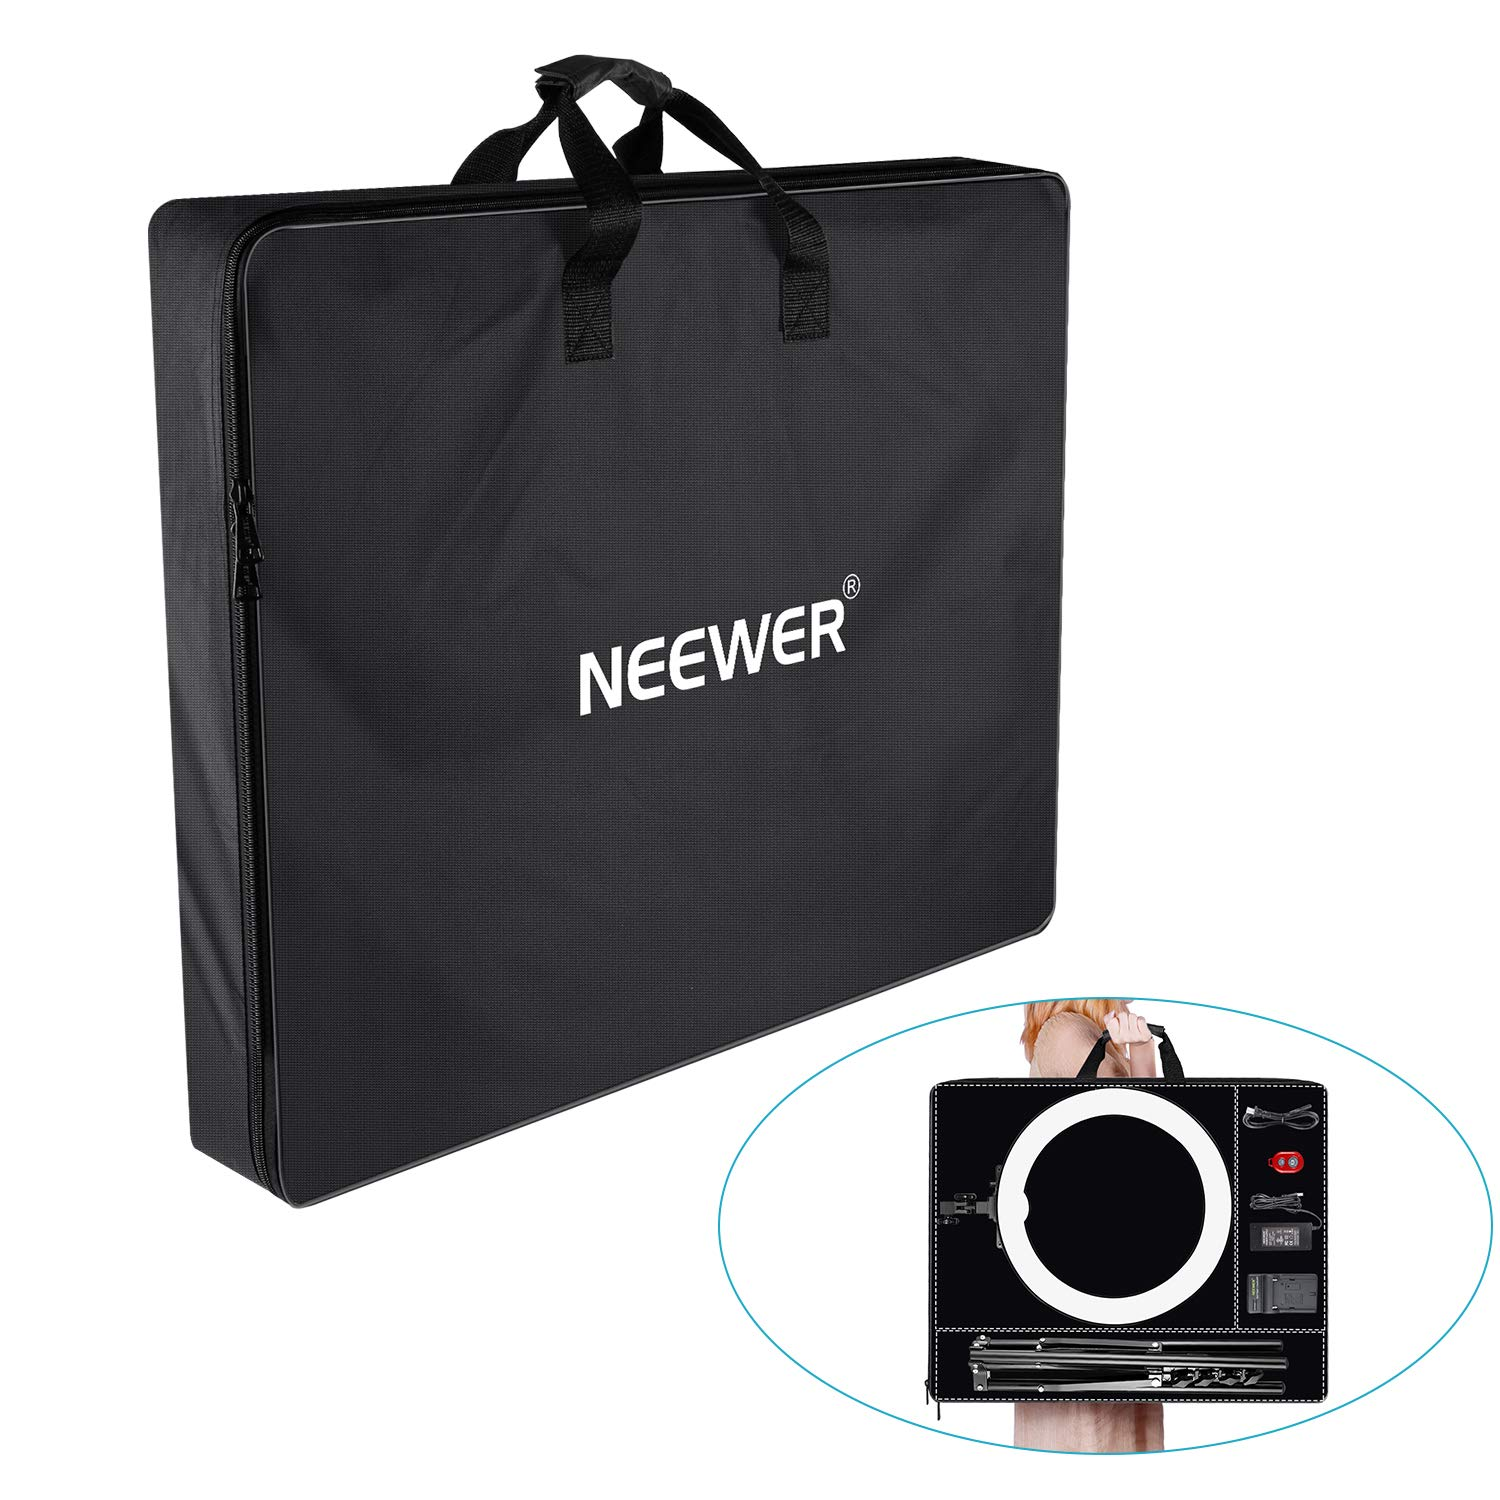 Neewer Enlarged Carrying Bag for 18 inches Ring Light, Light Stand, Accessories - 29.5x23.6 inches/75x60 Centimeters Protective Case, Durable Nylon,Light Weight (Black) by Neewer